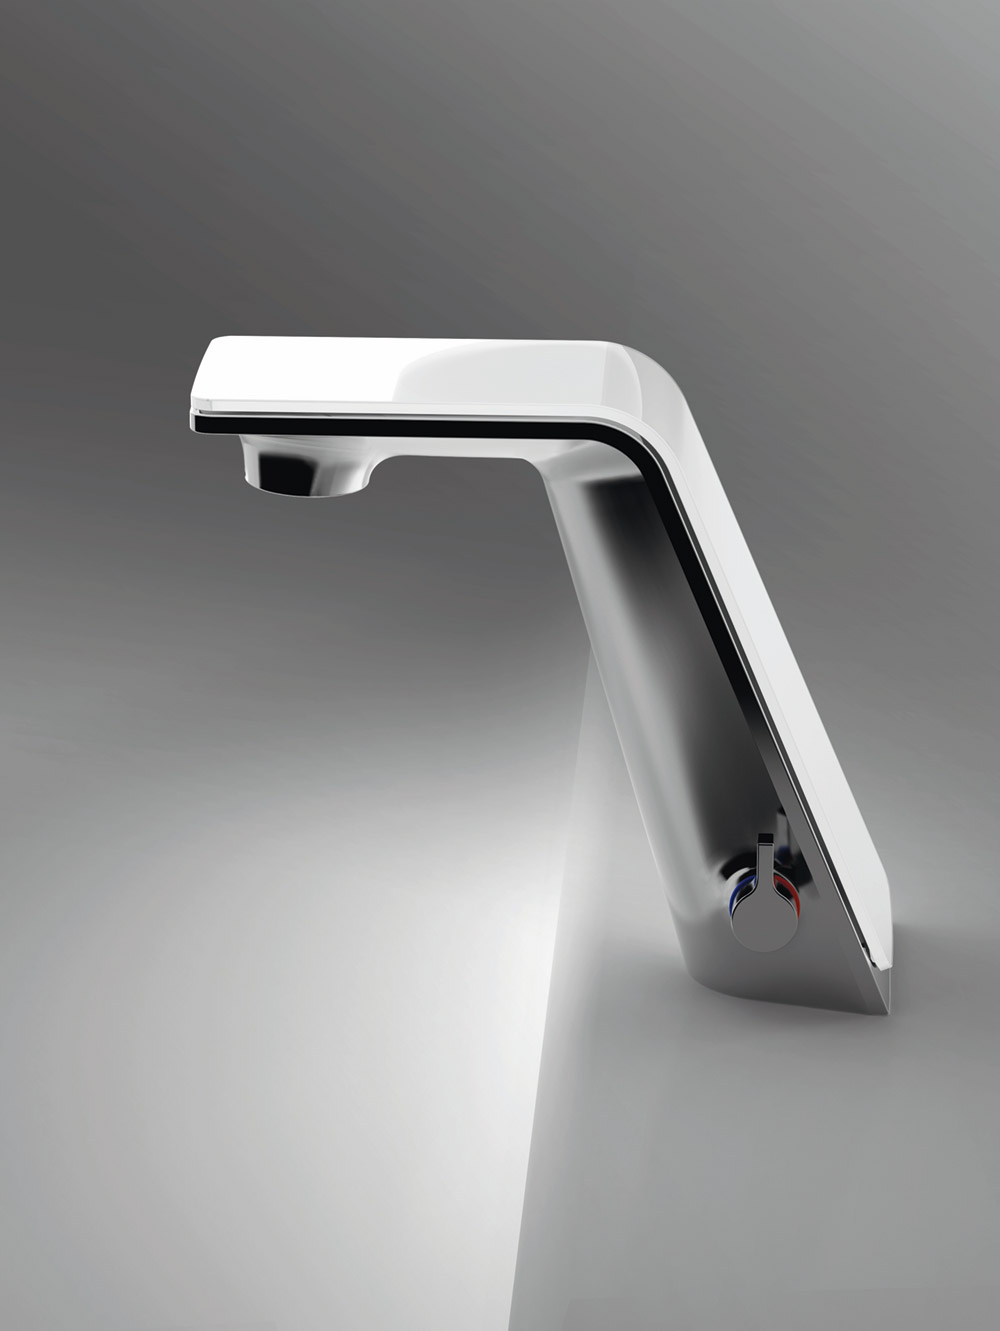 Hansa Armaturen Facebook The Chicago Athenaeum Alessi Sense By Hansa 2015 2017